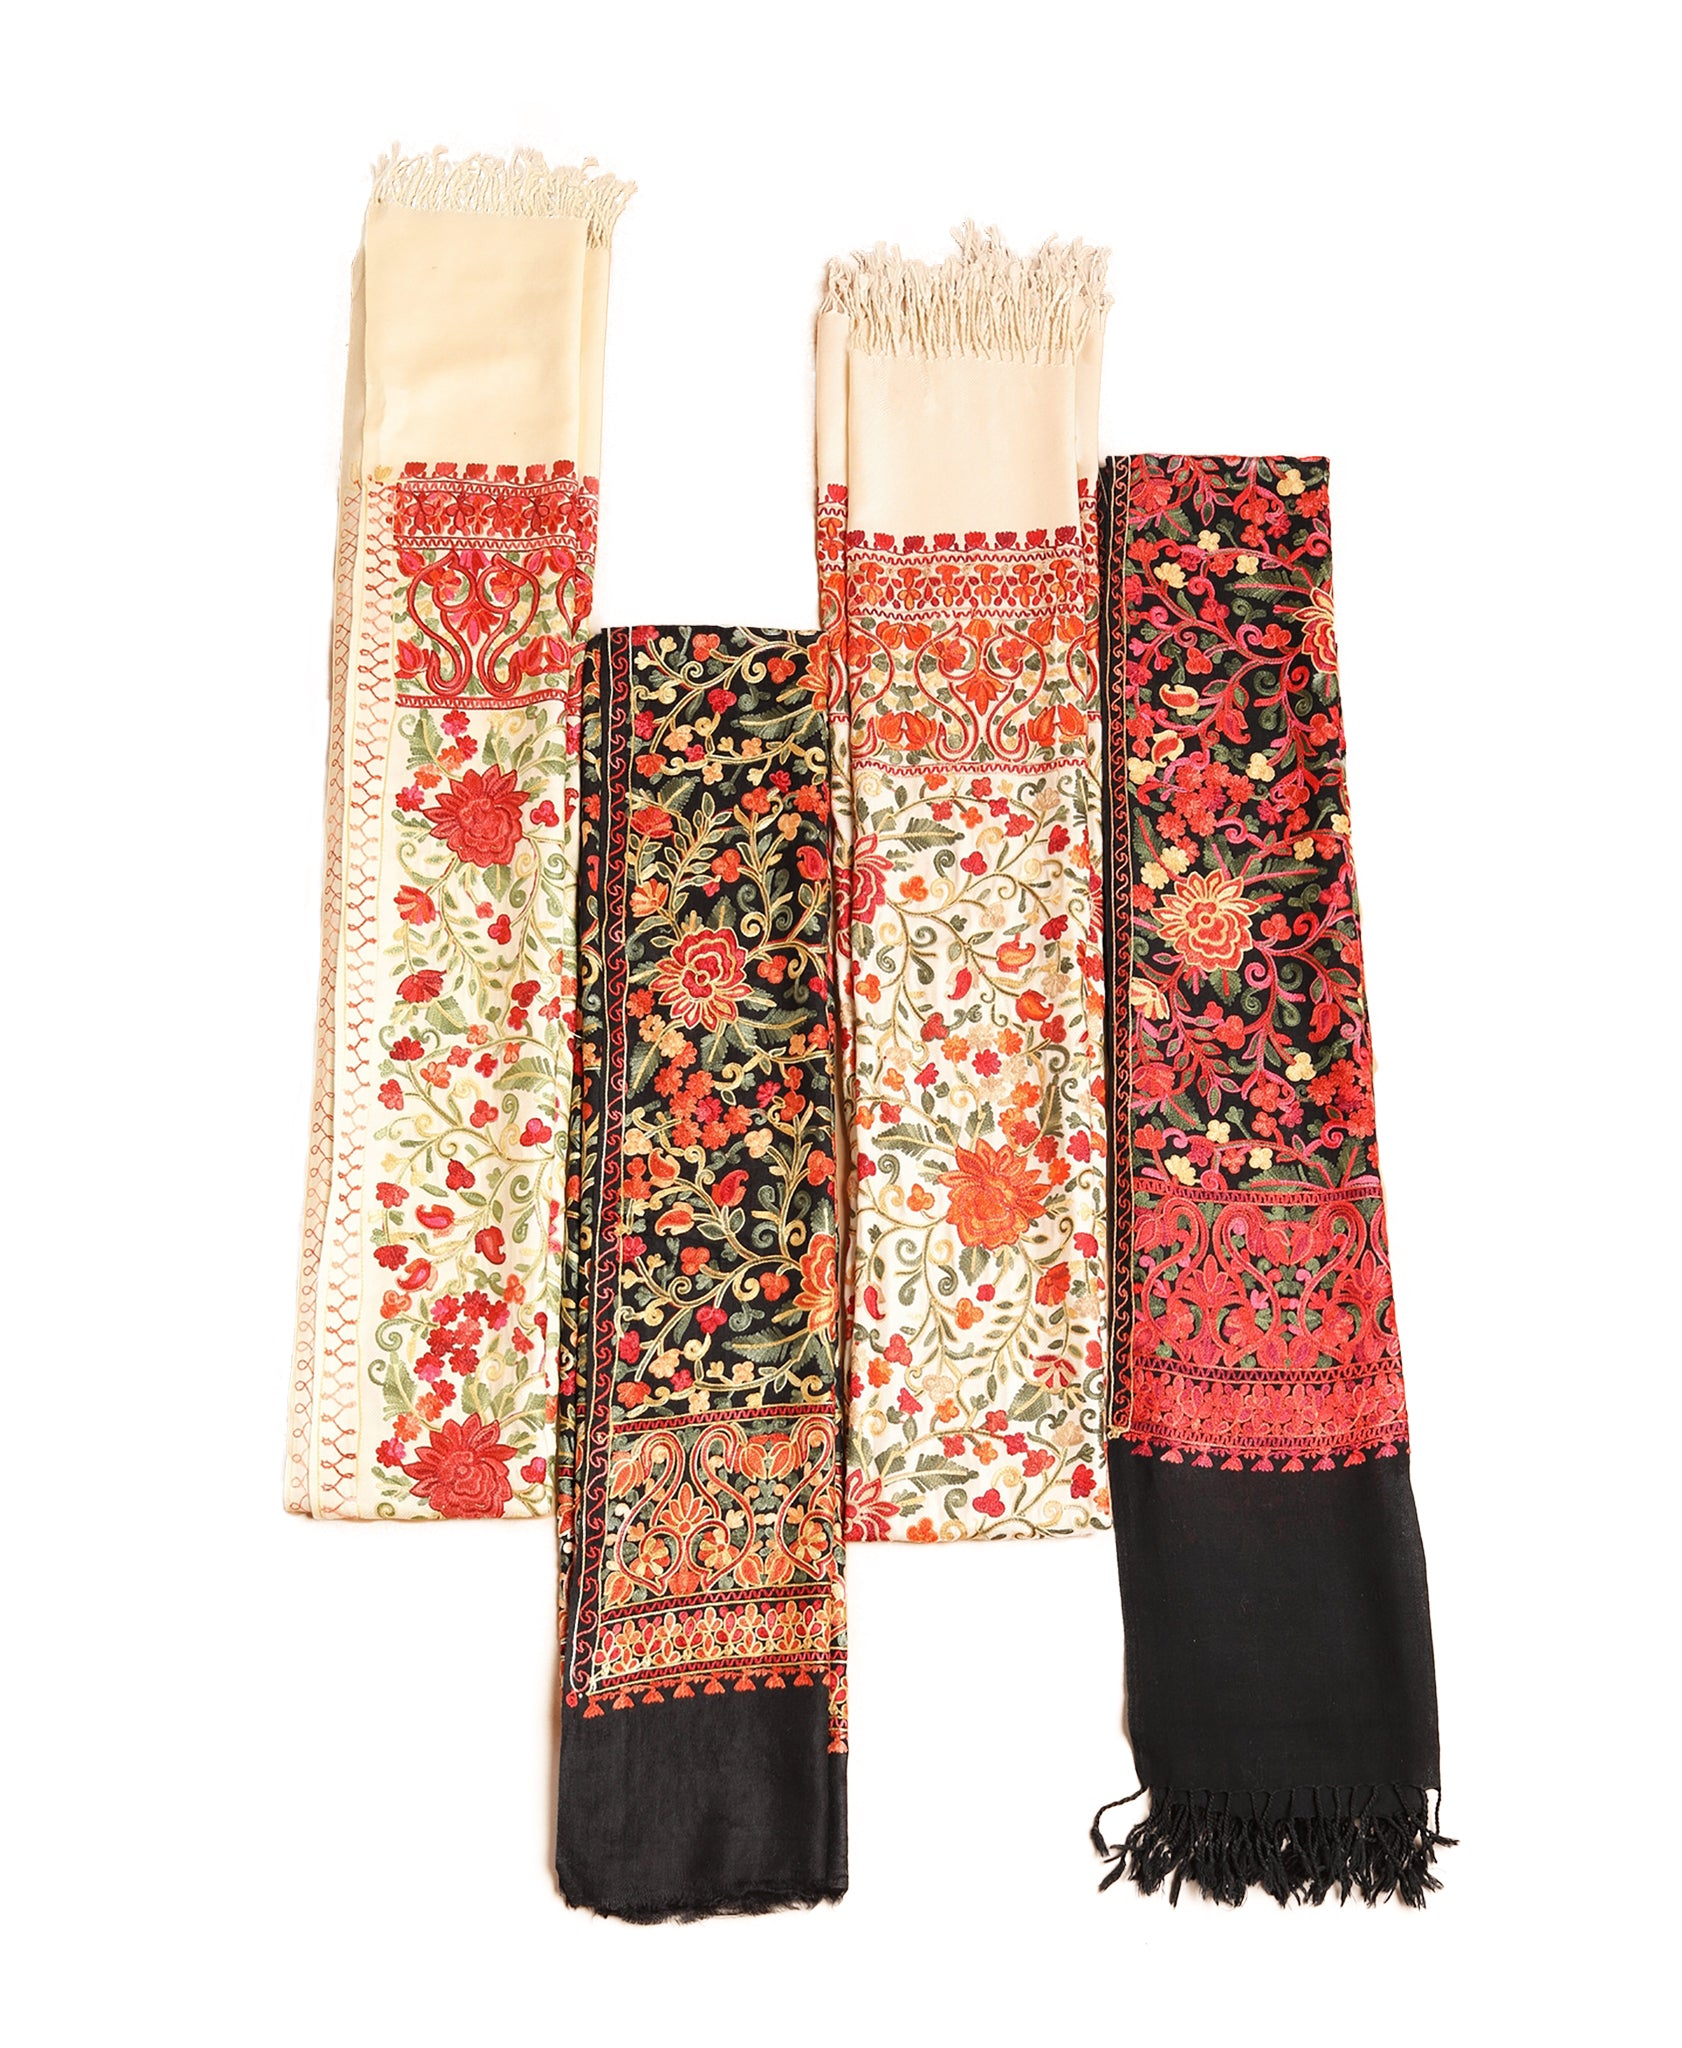 Colorful Floral Embroidery Cashmere Stole